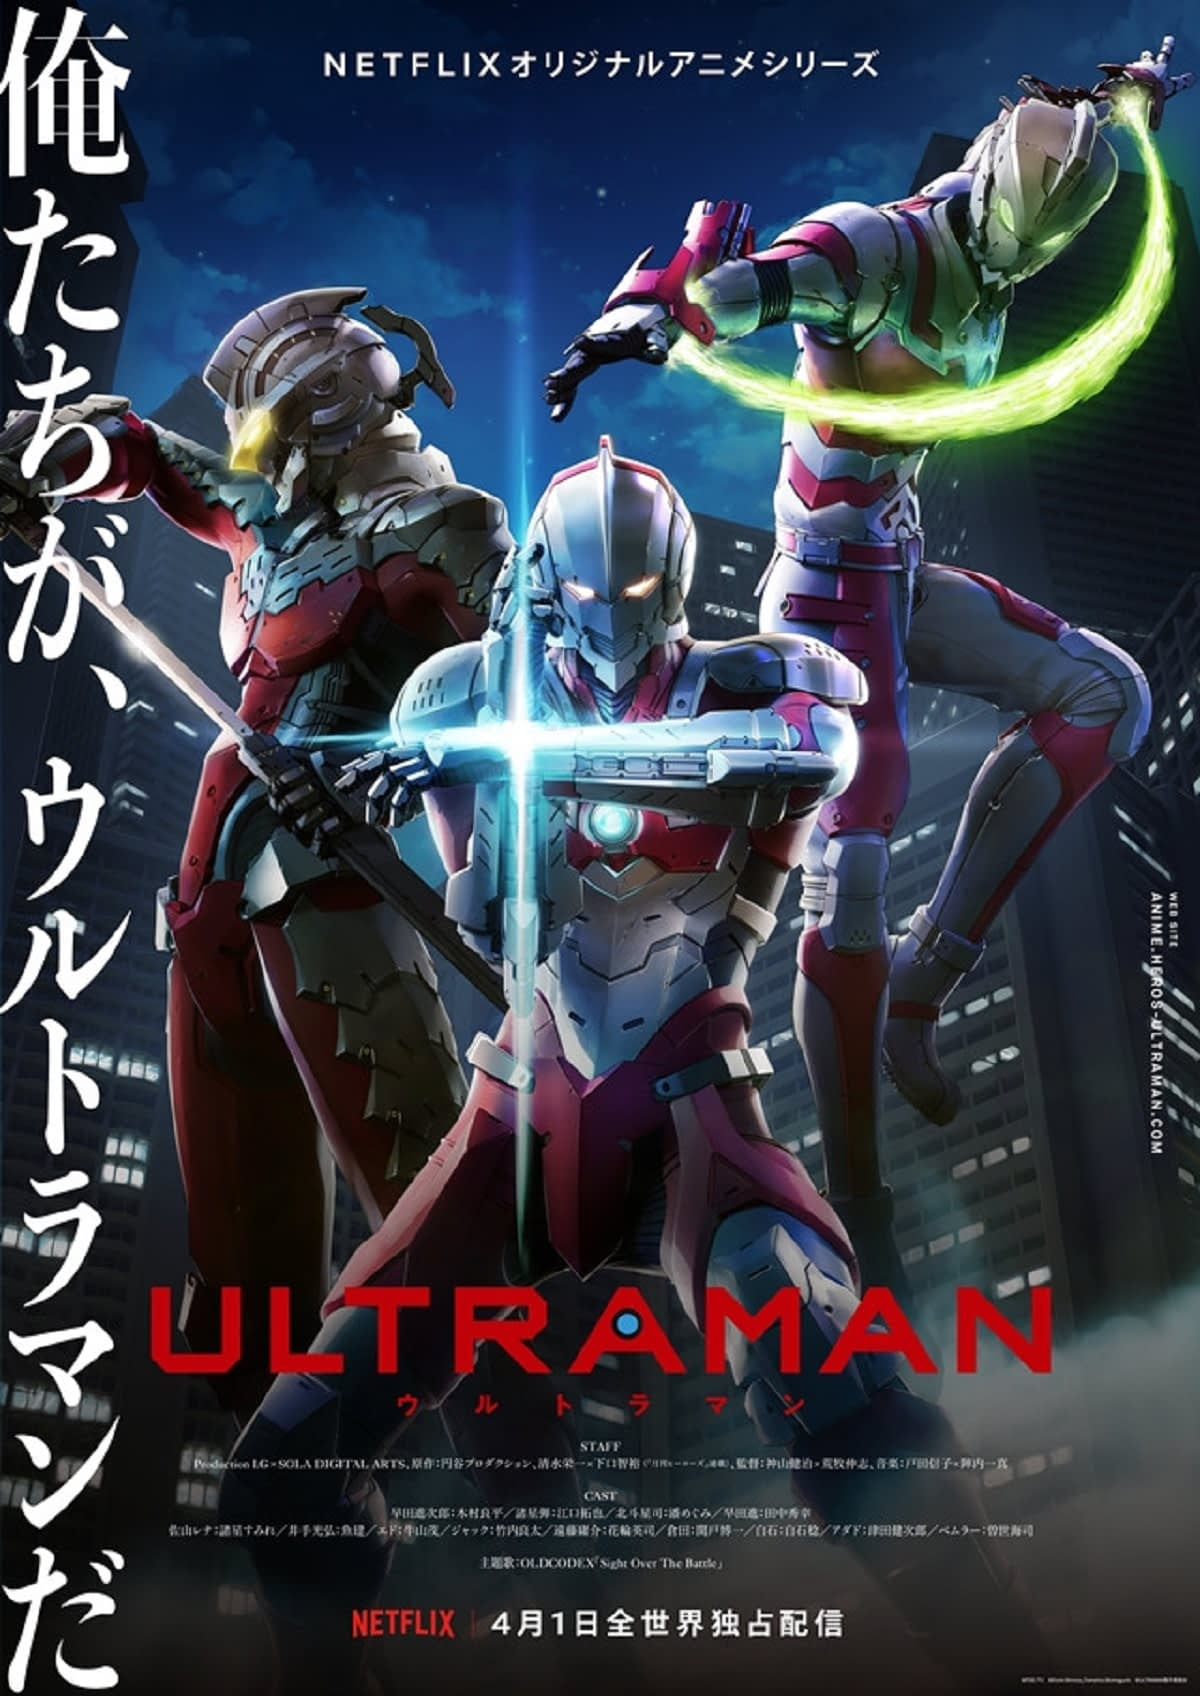 """Ultraman"" Anime Series Renewed for Season 2 at Netflix"